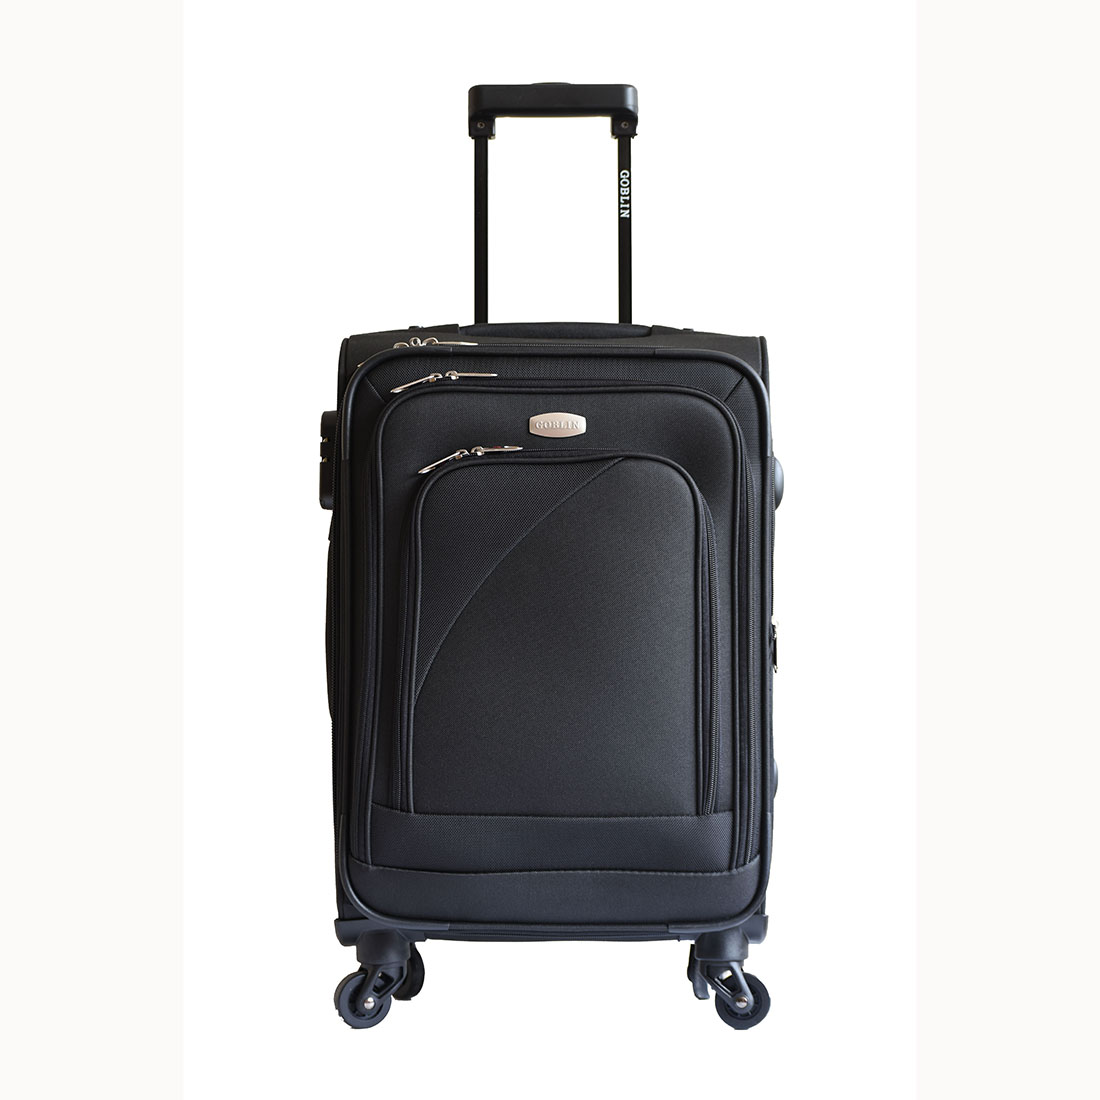 318f8faac ... Goblin Solitaire Soft luggage 4 wheels Trolley Bag. Back. solitaire -front